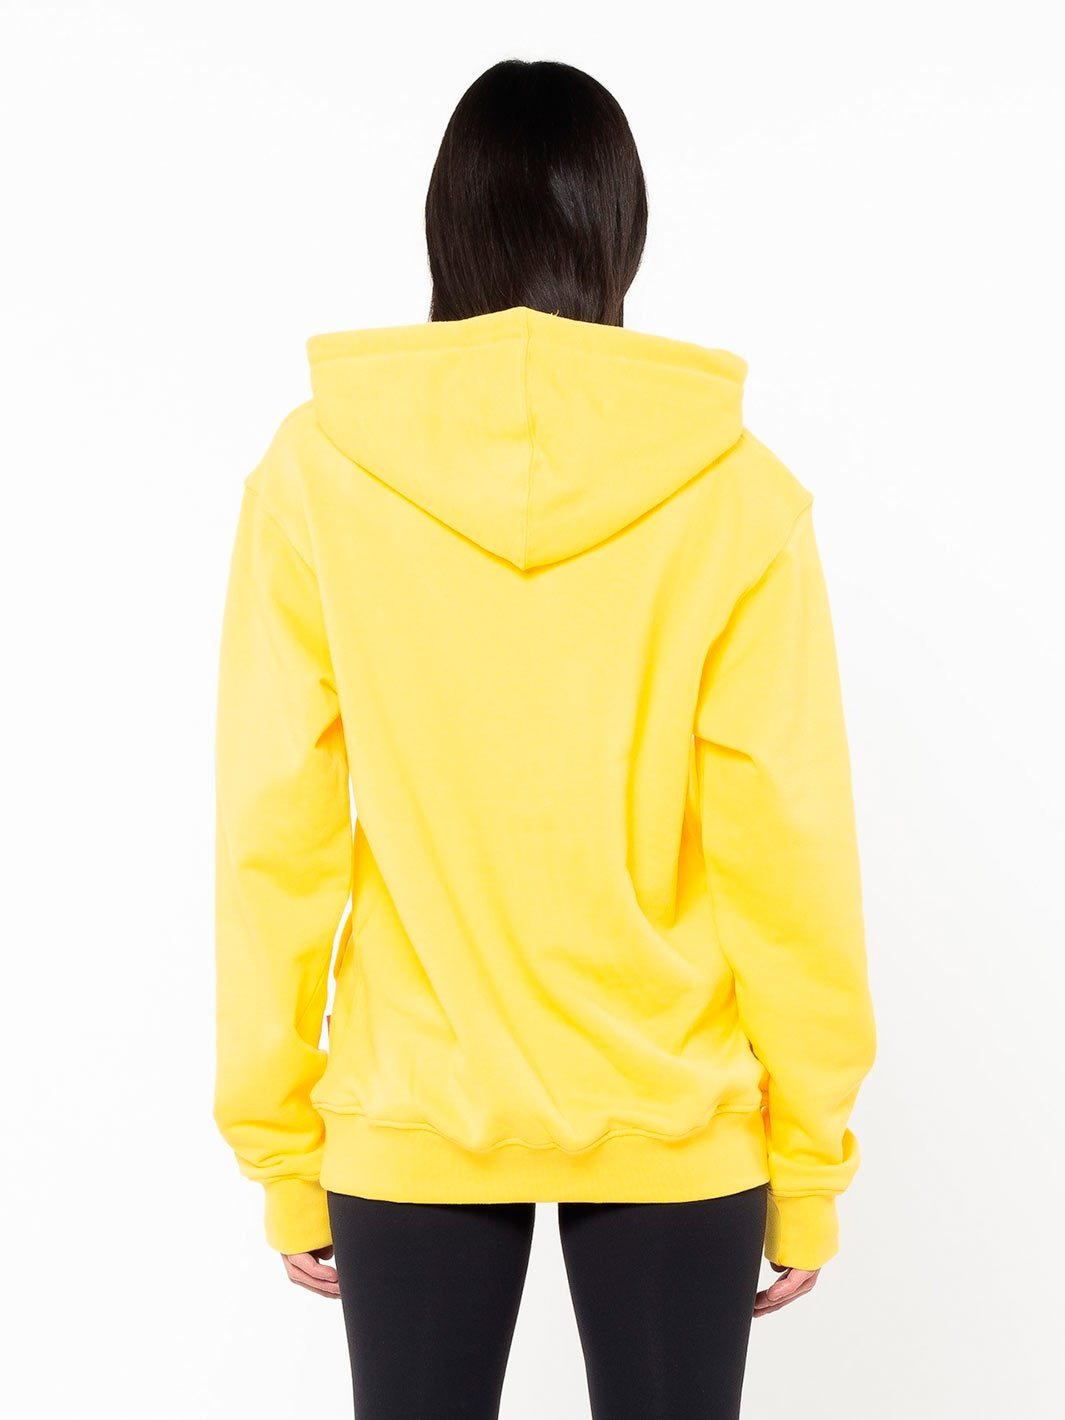 75 Cotton Hood - The Bobby Boga